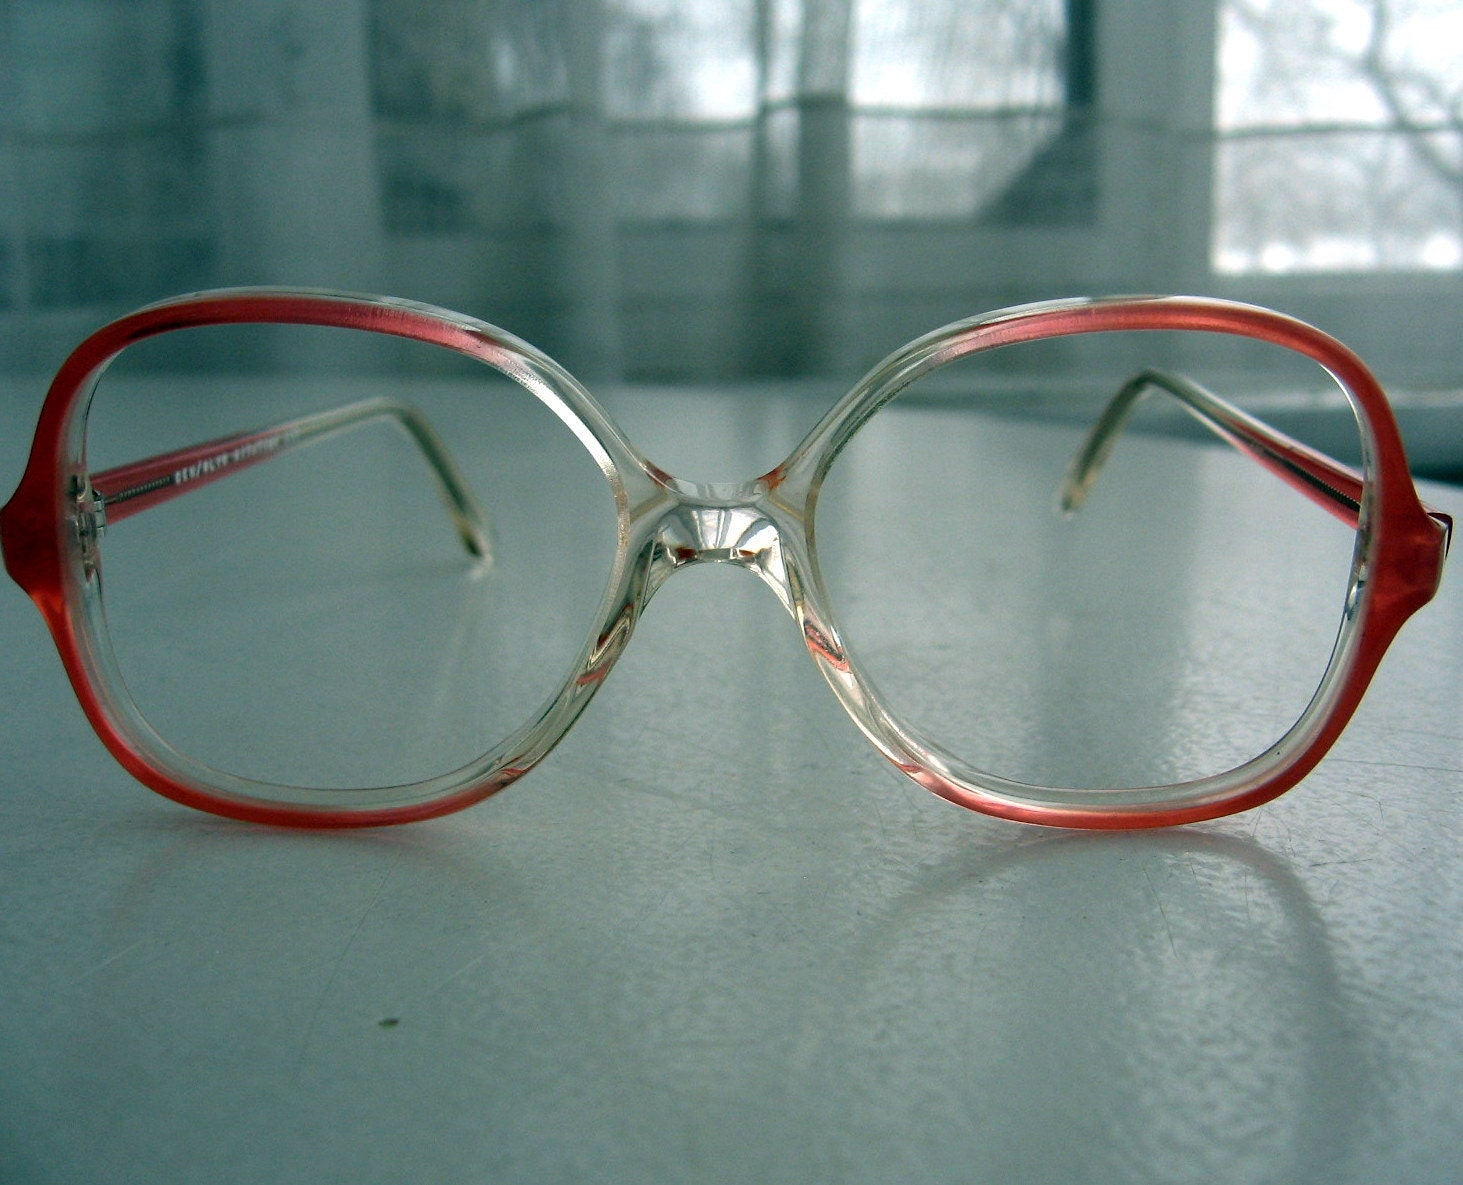 Eyeglasses Frame For Small Faces : TEEN Small Face Vintage 80s Big Eyeglasses Frames by Century